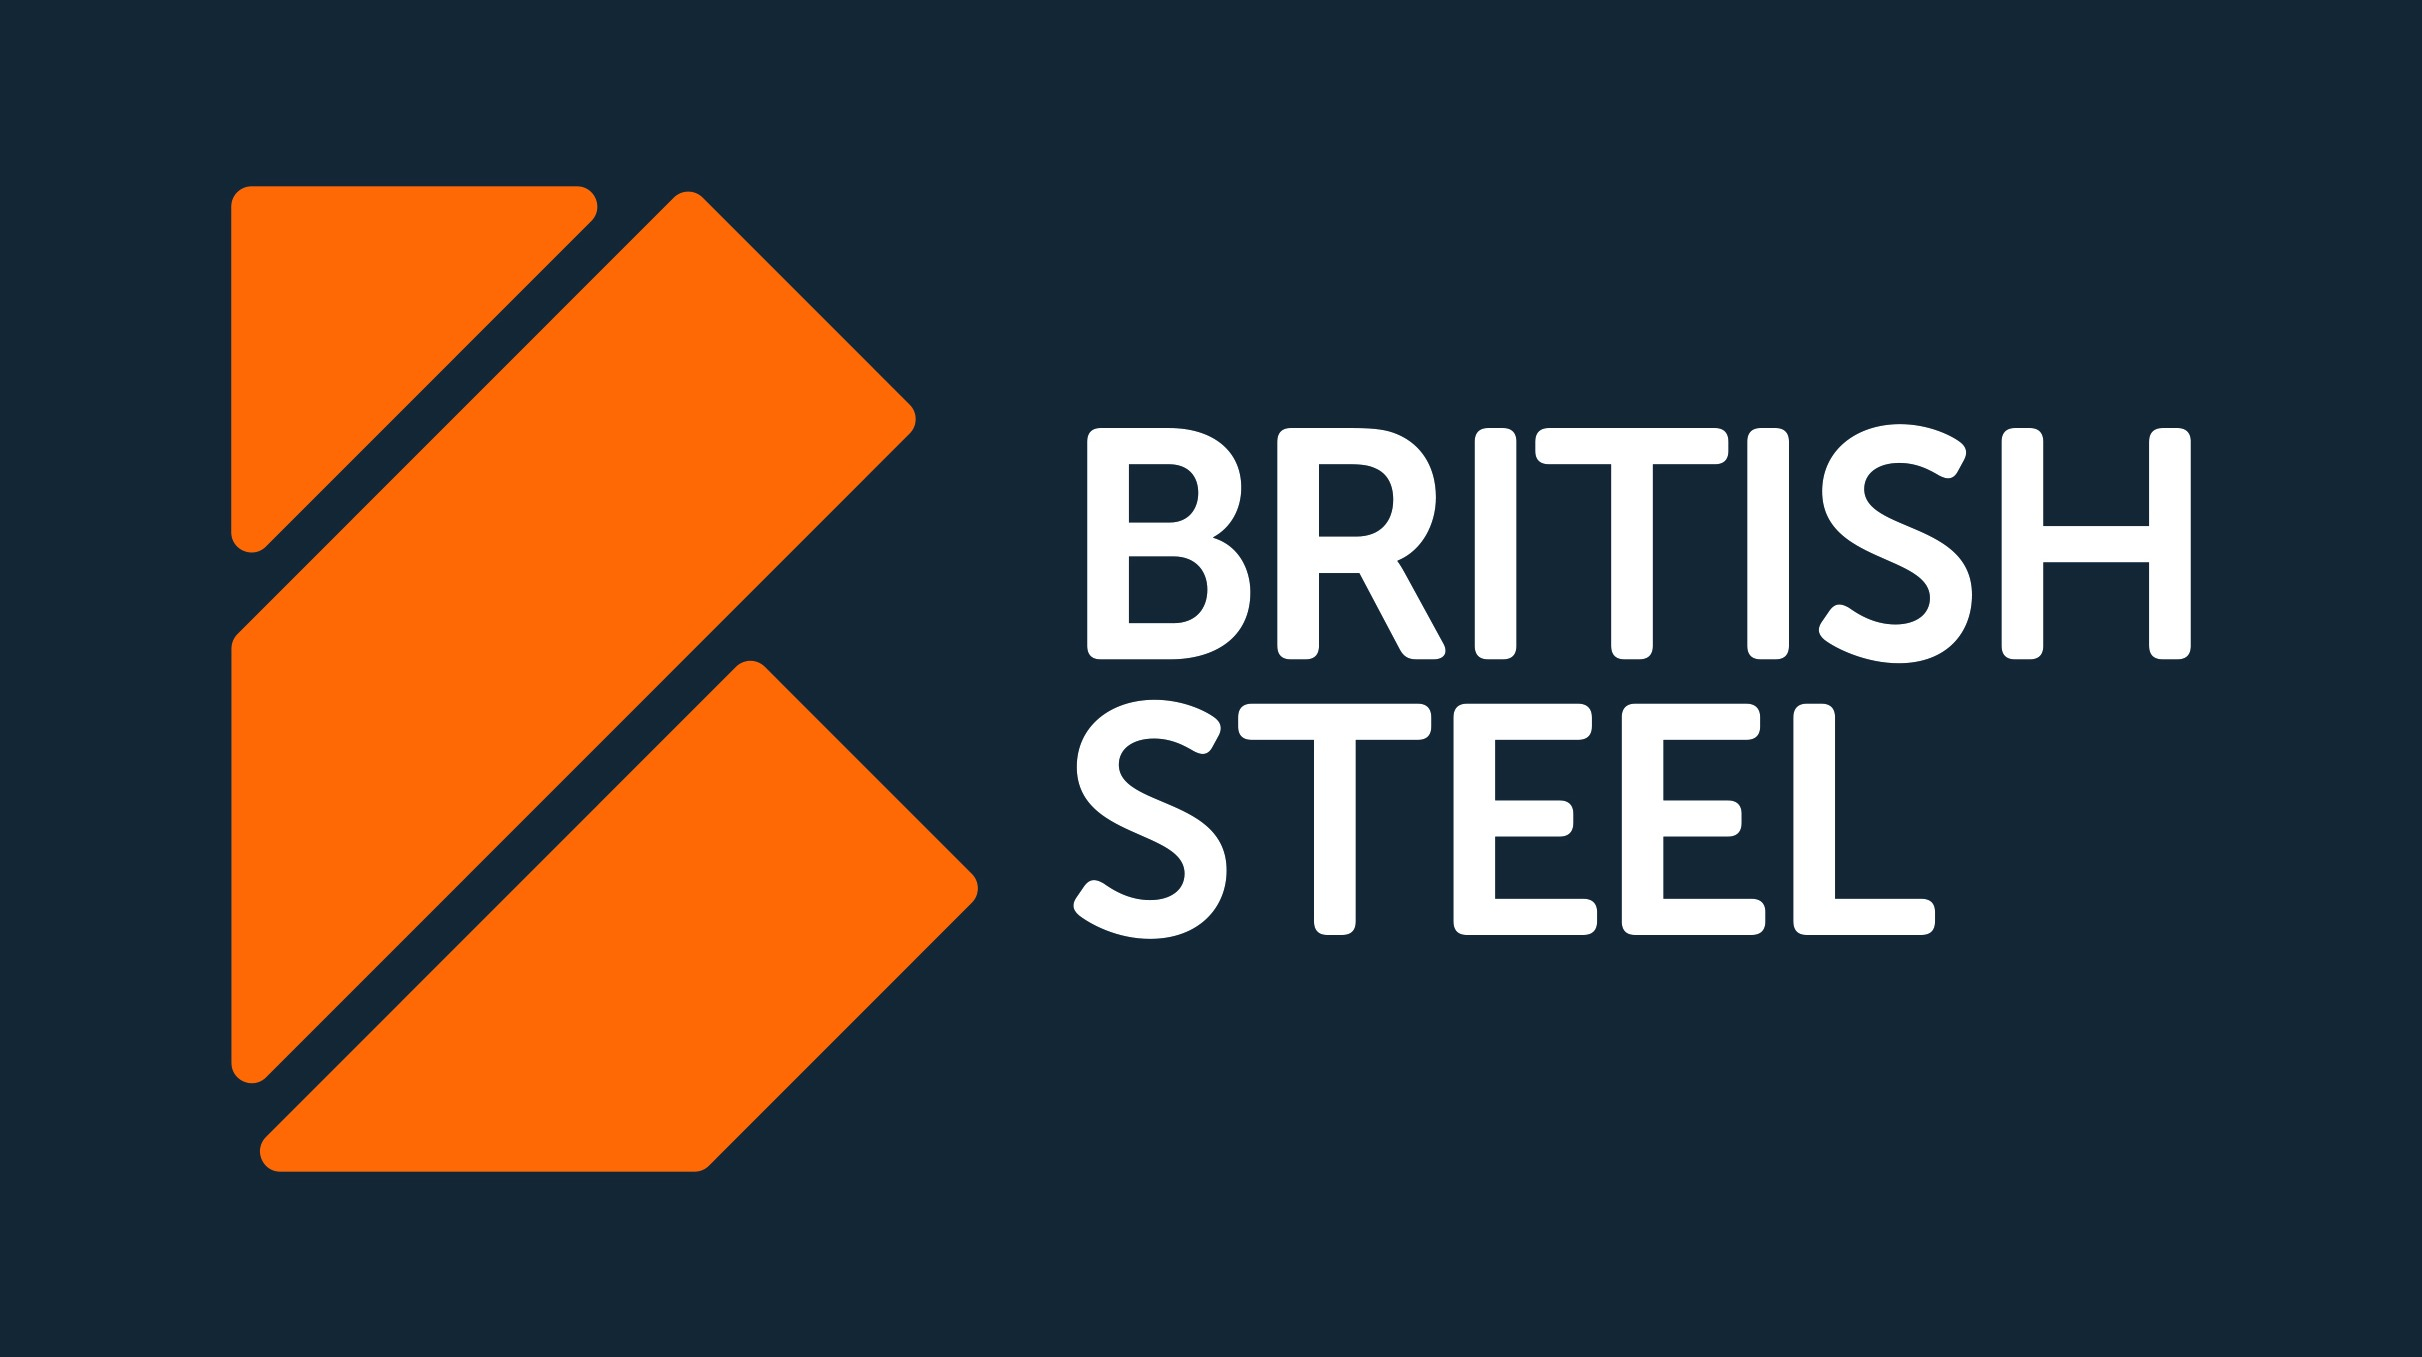 british steel - photo #2